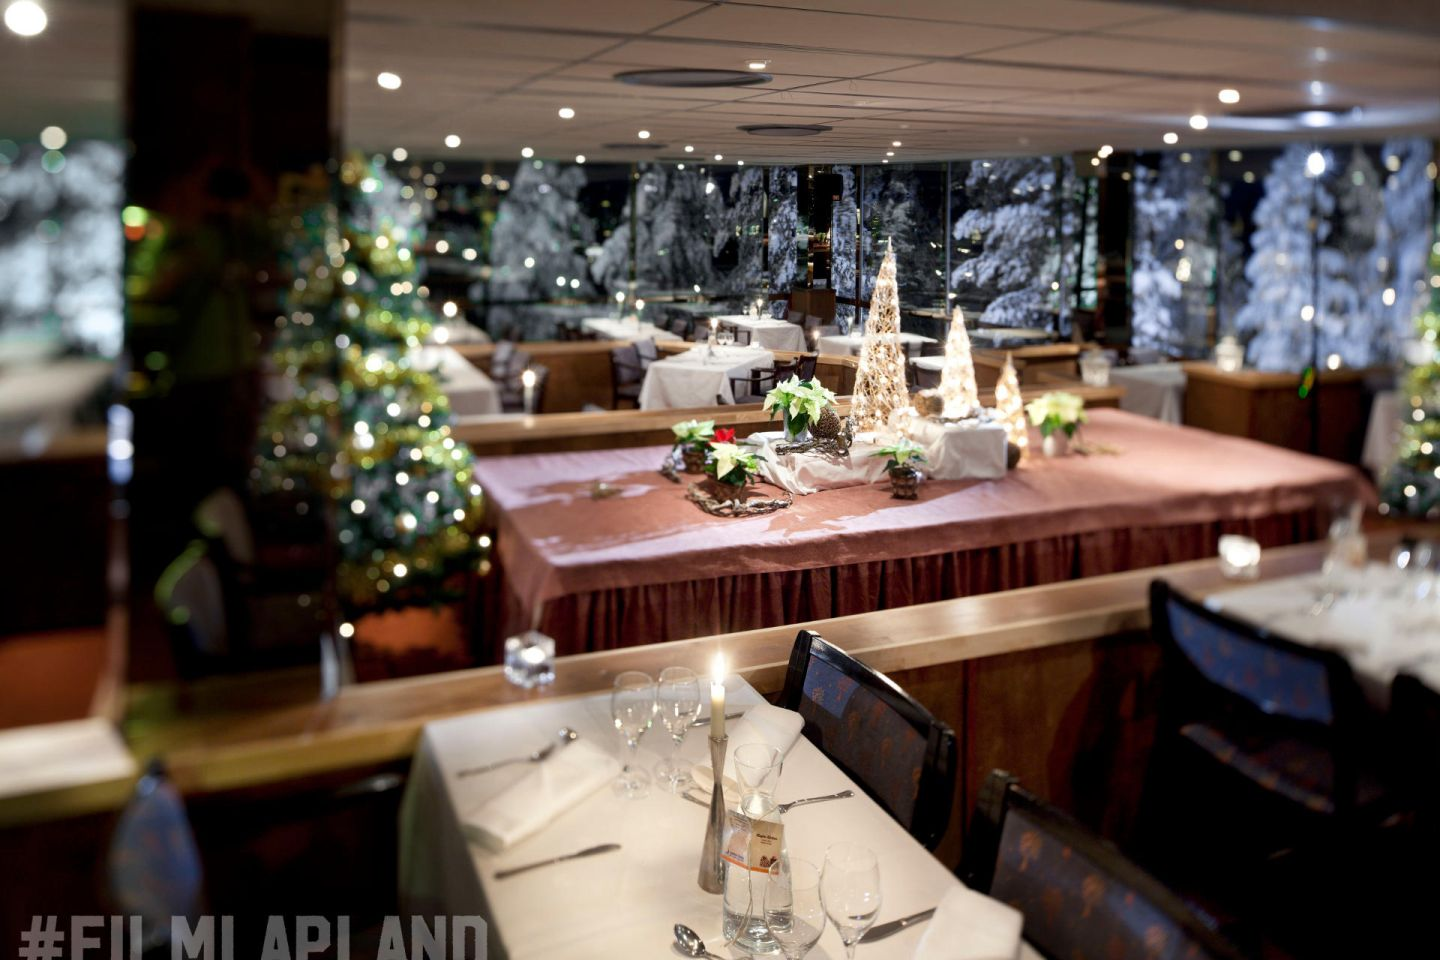 Lapland Hotels, Hotel Sky Restaurant in Finland